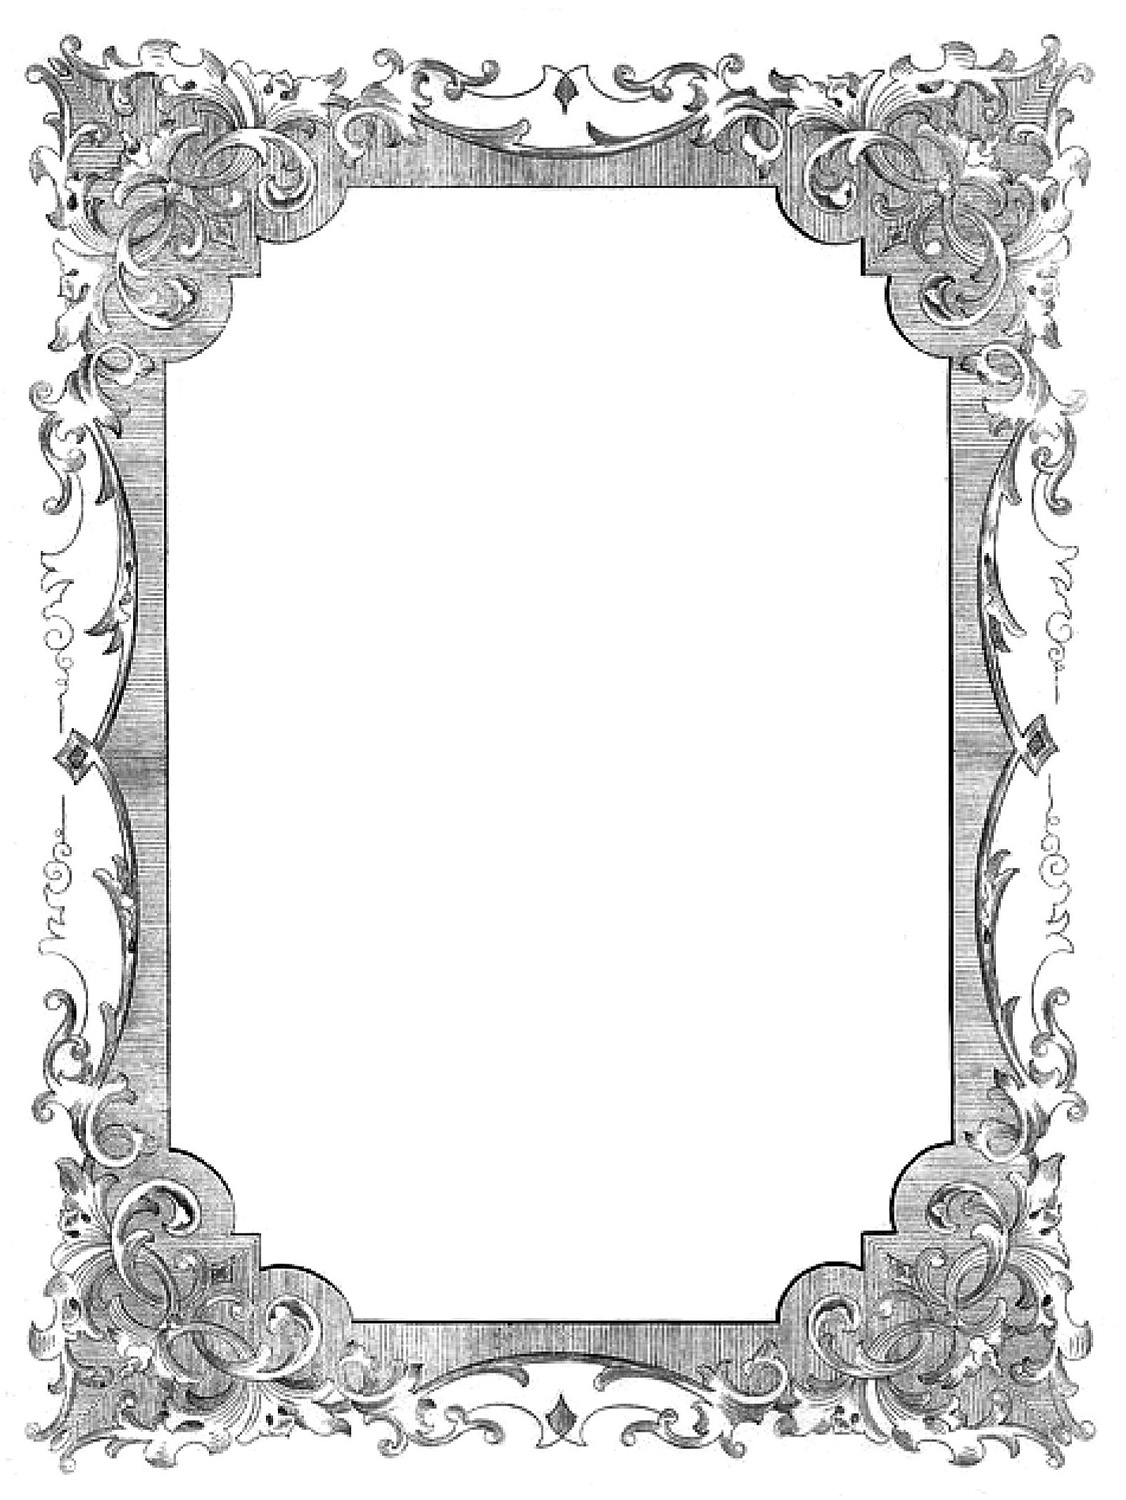 Vintage Clip Art - Romantic Frames - Christmas Colors - The Graphics ...